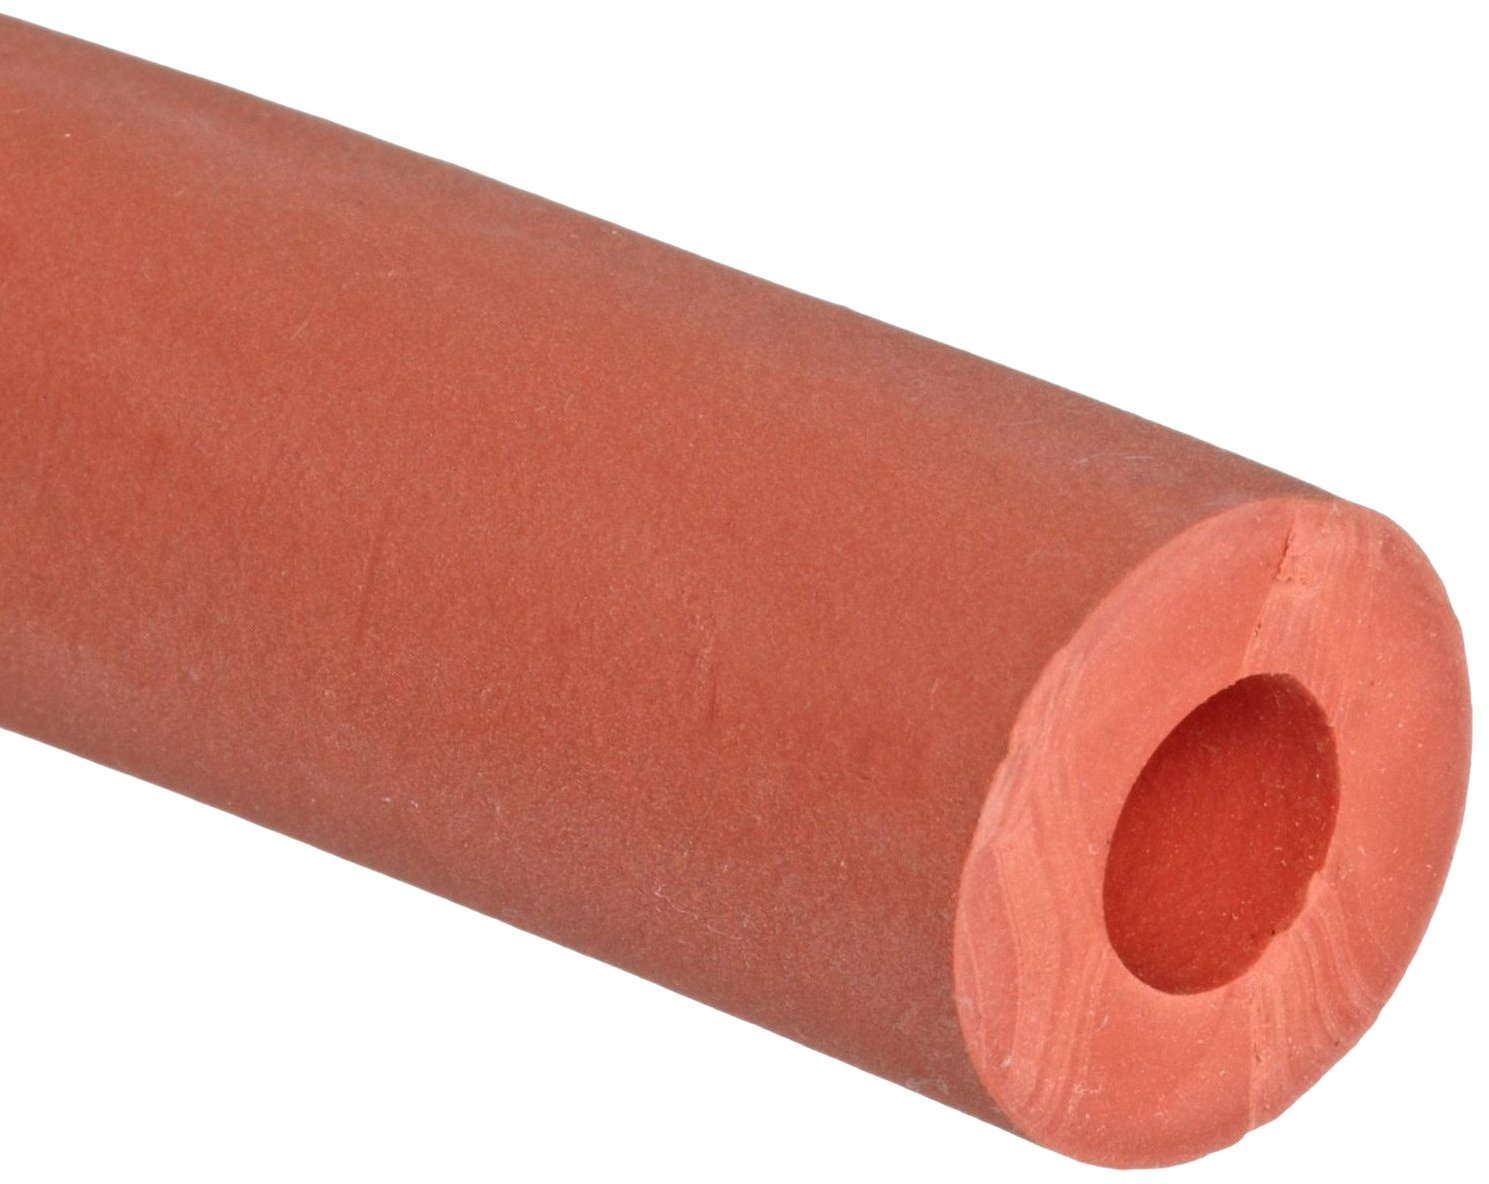 Thomas 1889 Gum Rubber Red Extruded Vacuum Tubing, 1-1/2'' OD x 3/4'' ID x 3/8'' Wall Thick, 10' Length by Thomas (Image #1)